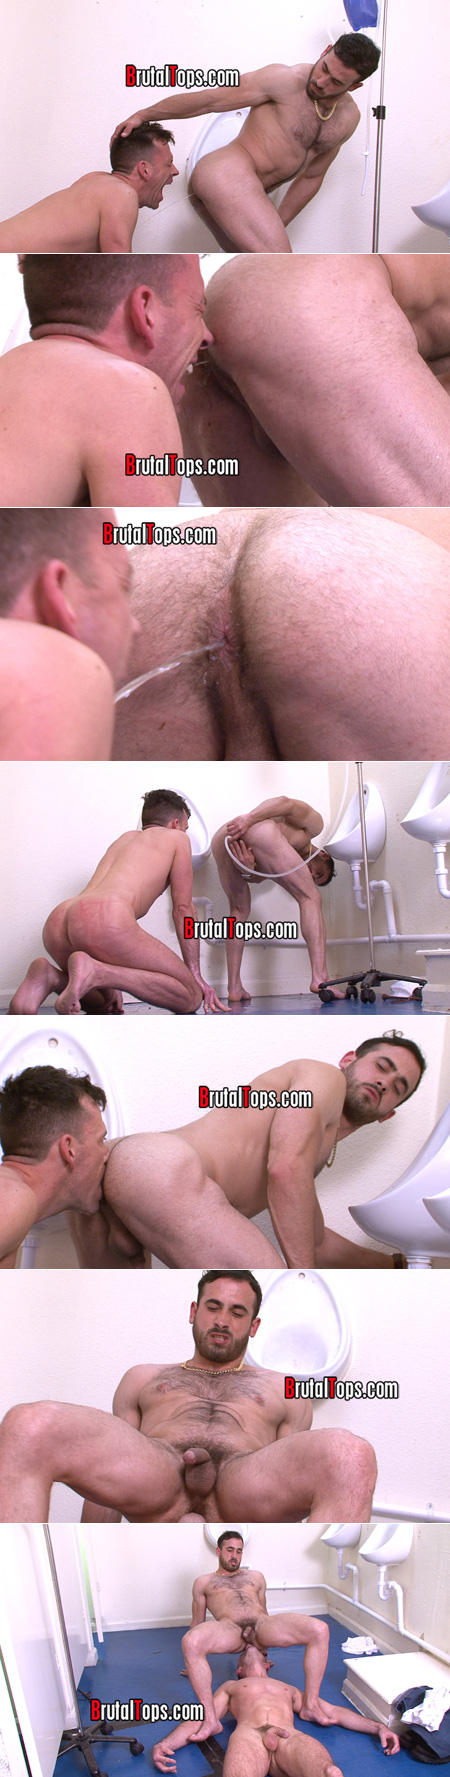 Submissive man taking an enema to the face then eating a straight man hairy muscle ass.